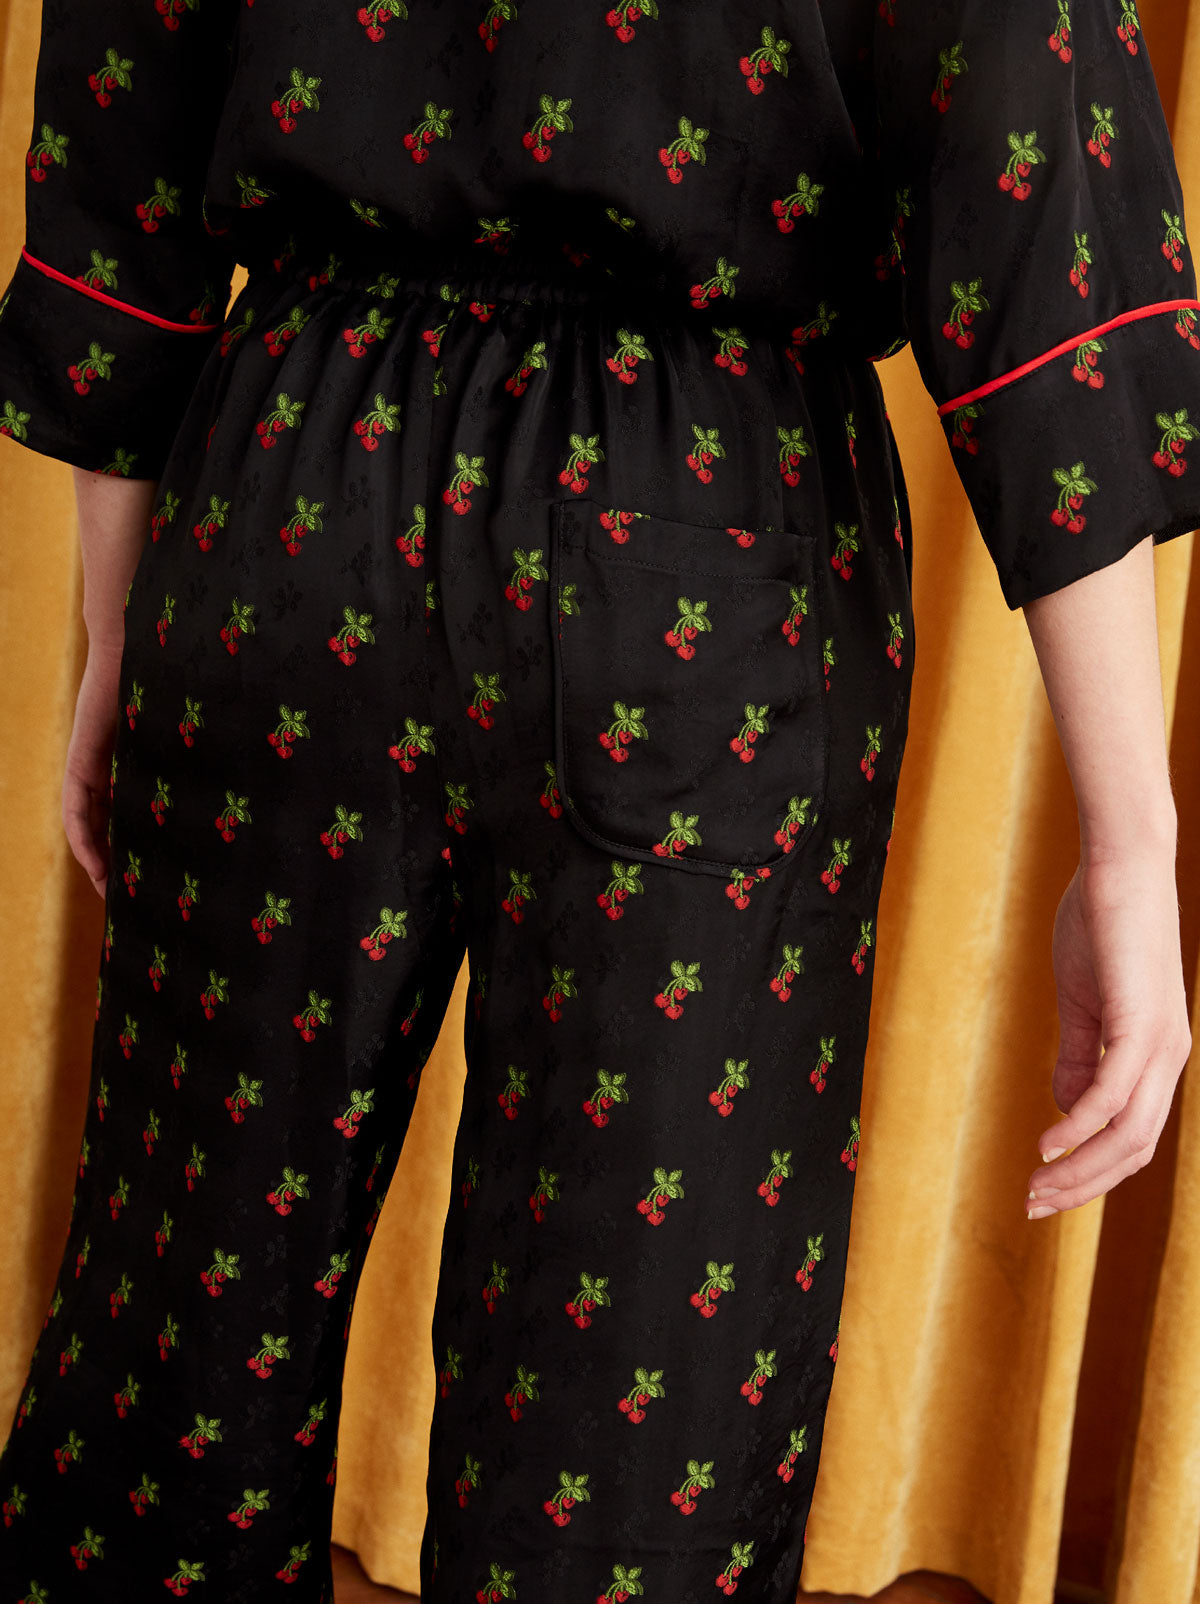 Agatha Black Cherry PJ Culotte Trousers by KITRI Studio